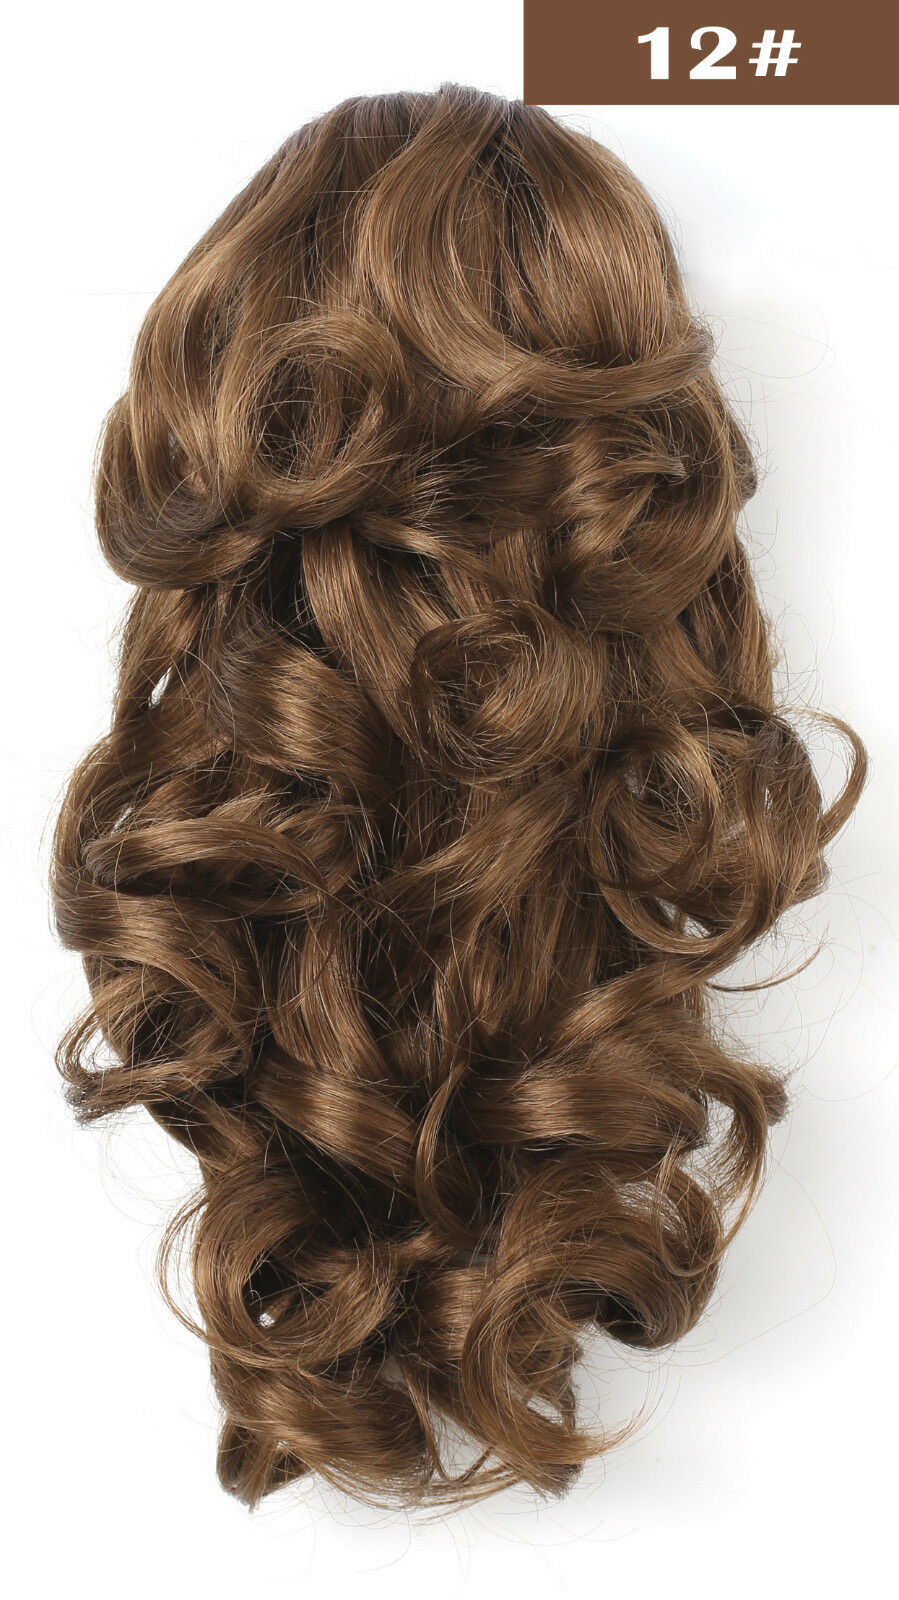 Onedor 12 Inch Jaw Claw Clip Wavy Ponytail Hair Extensions Light